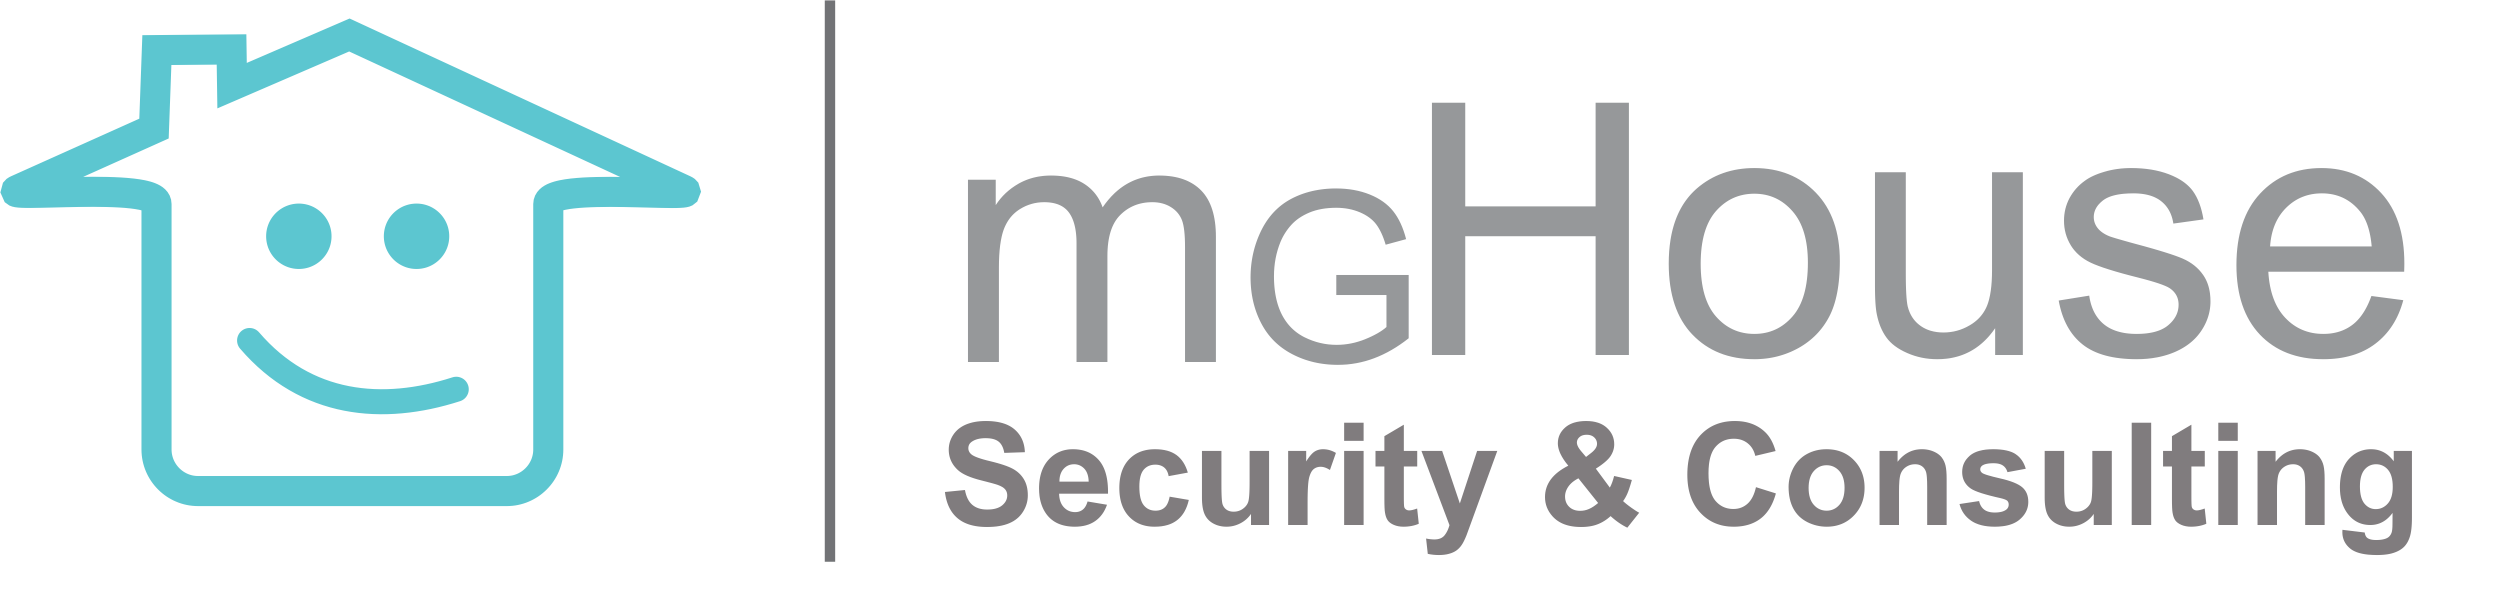 MG House Security Logo